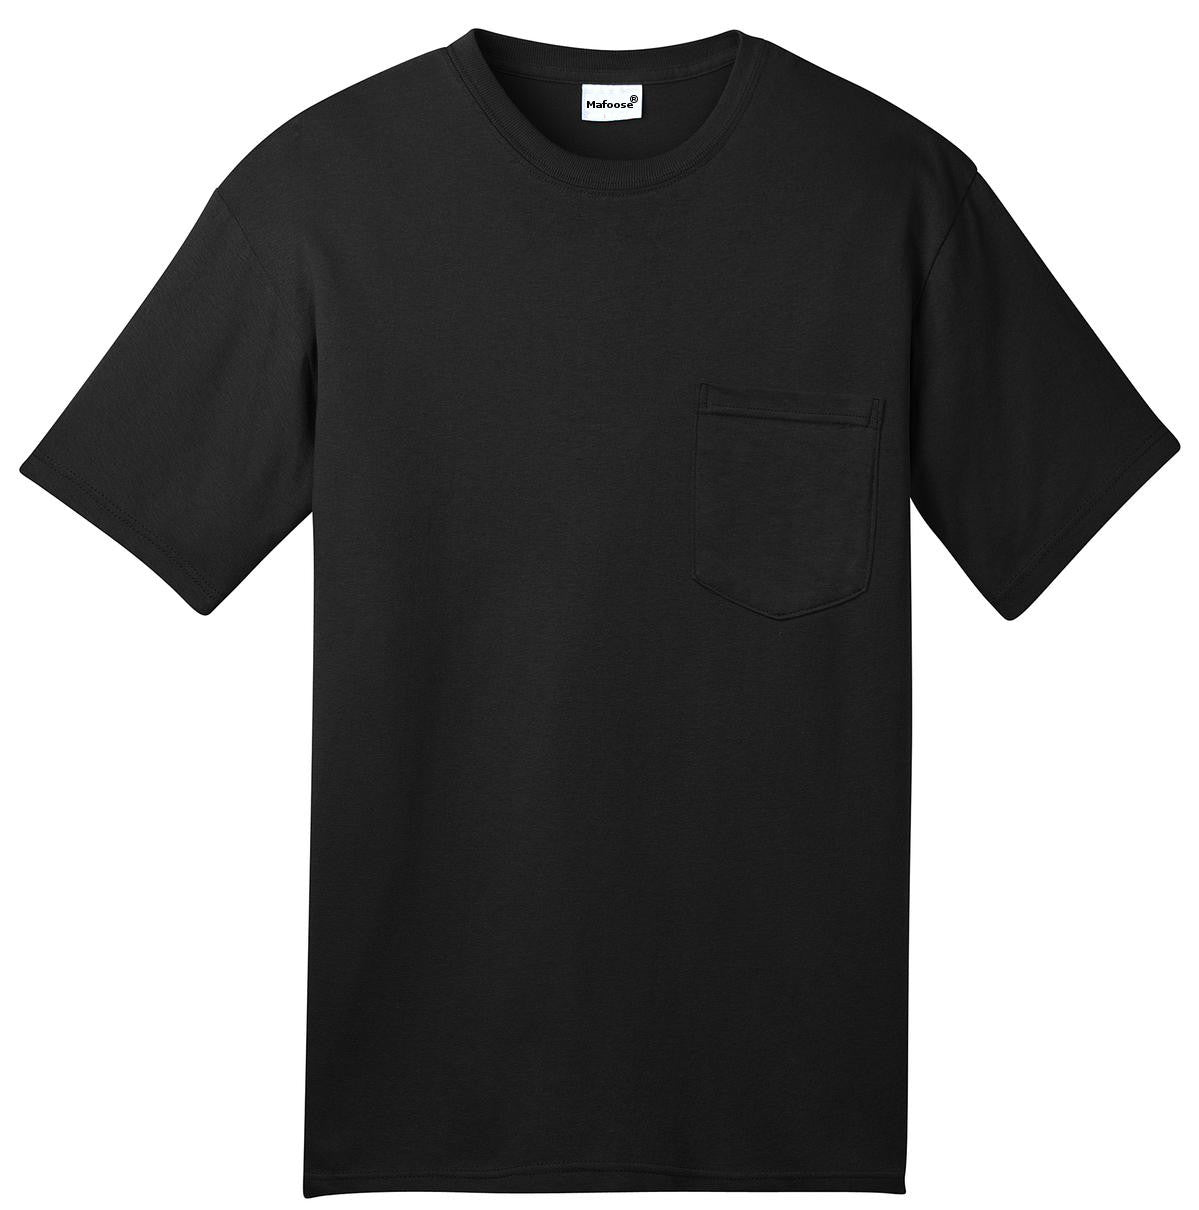 Mafoose Men's All American Tee Shirt with Pocket Black-Front